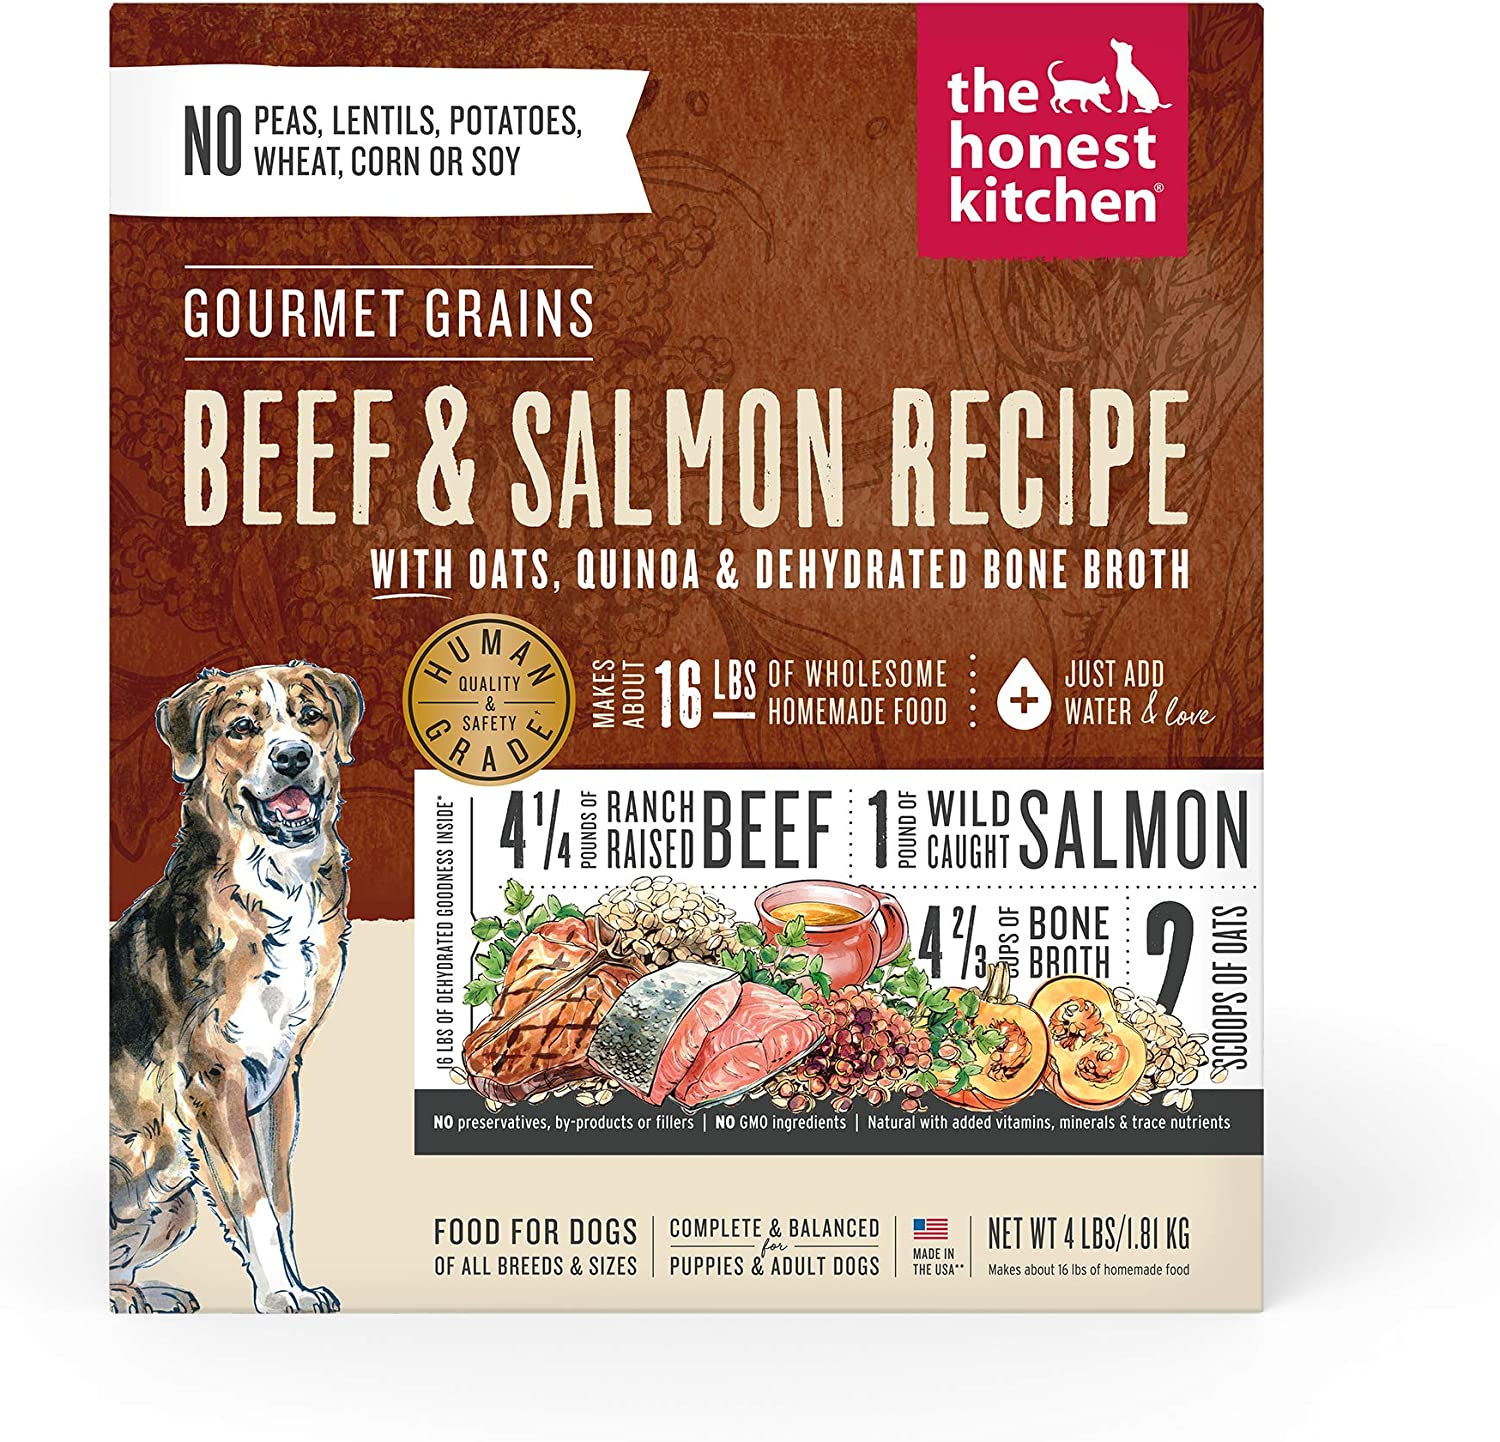 The Honest Kitchen Gourmet Grains Beef & Salmon Recipe Dehydrated Dog Food, 4 lb box